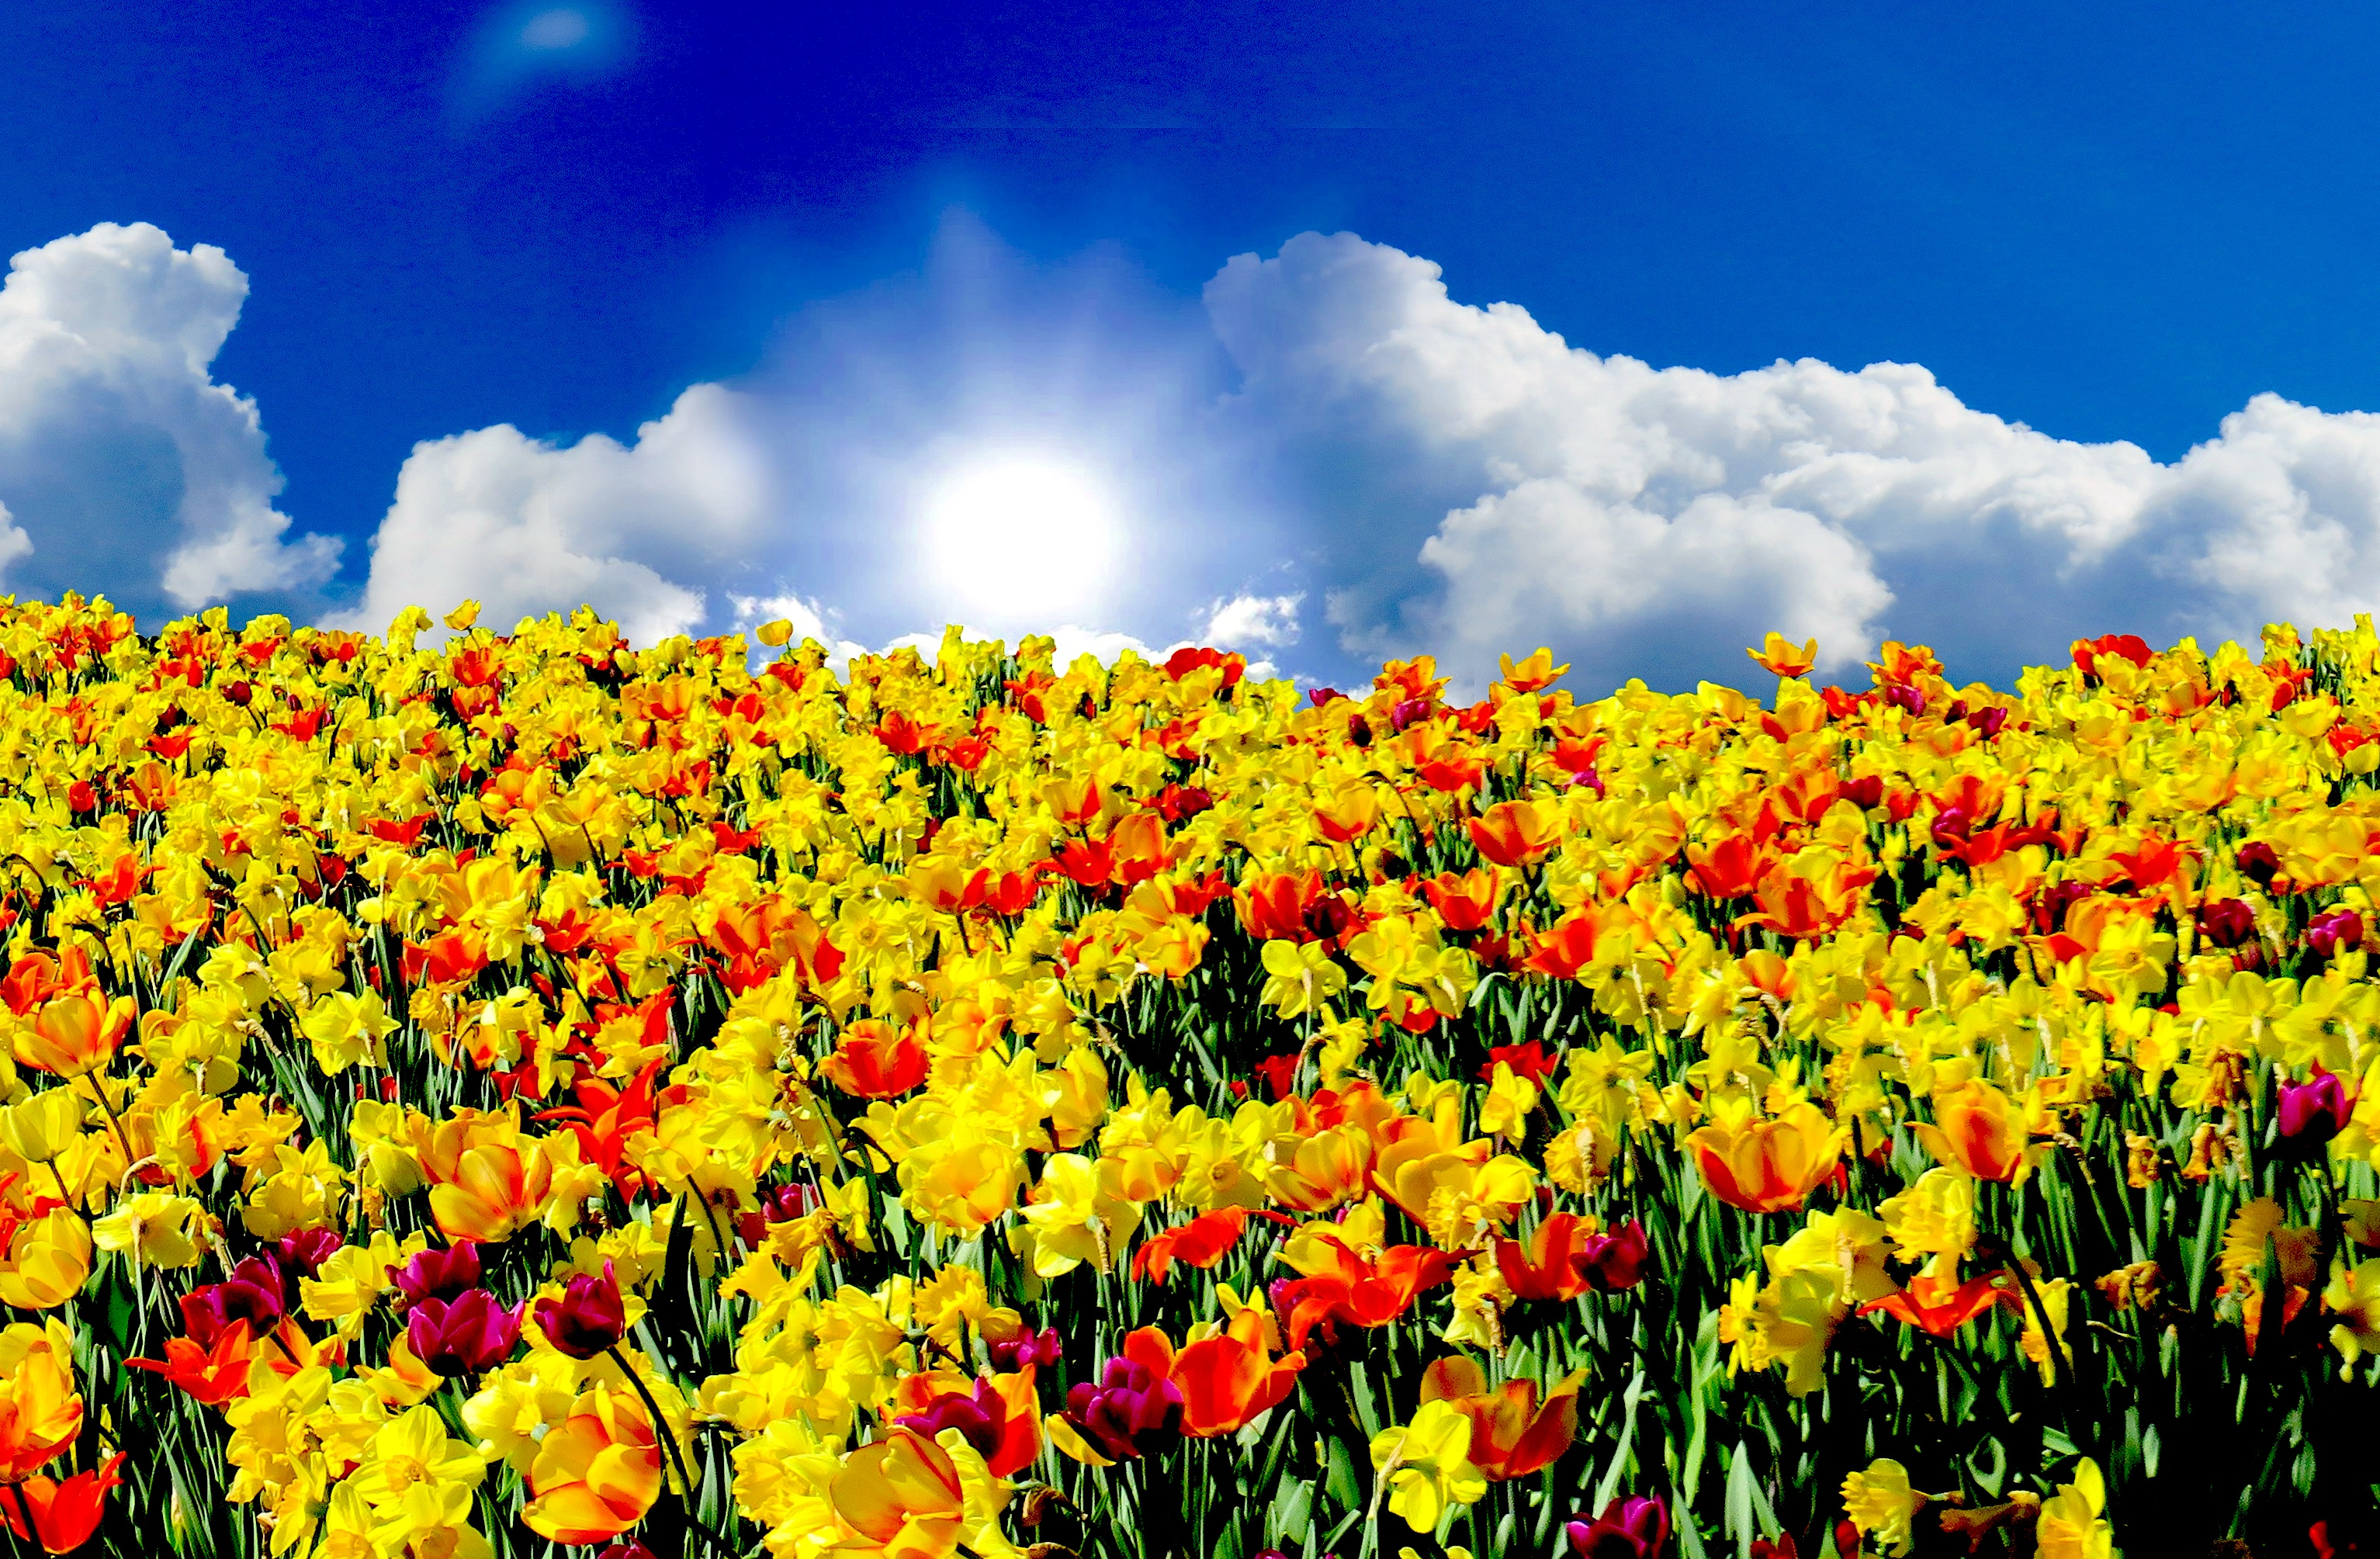 As hybrids flower, a new era dawns in cloud computing